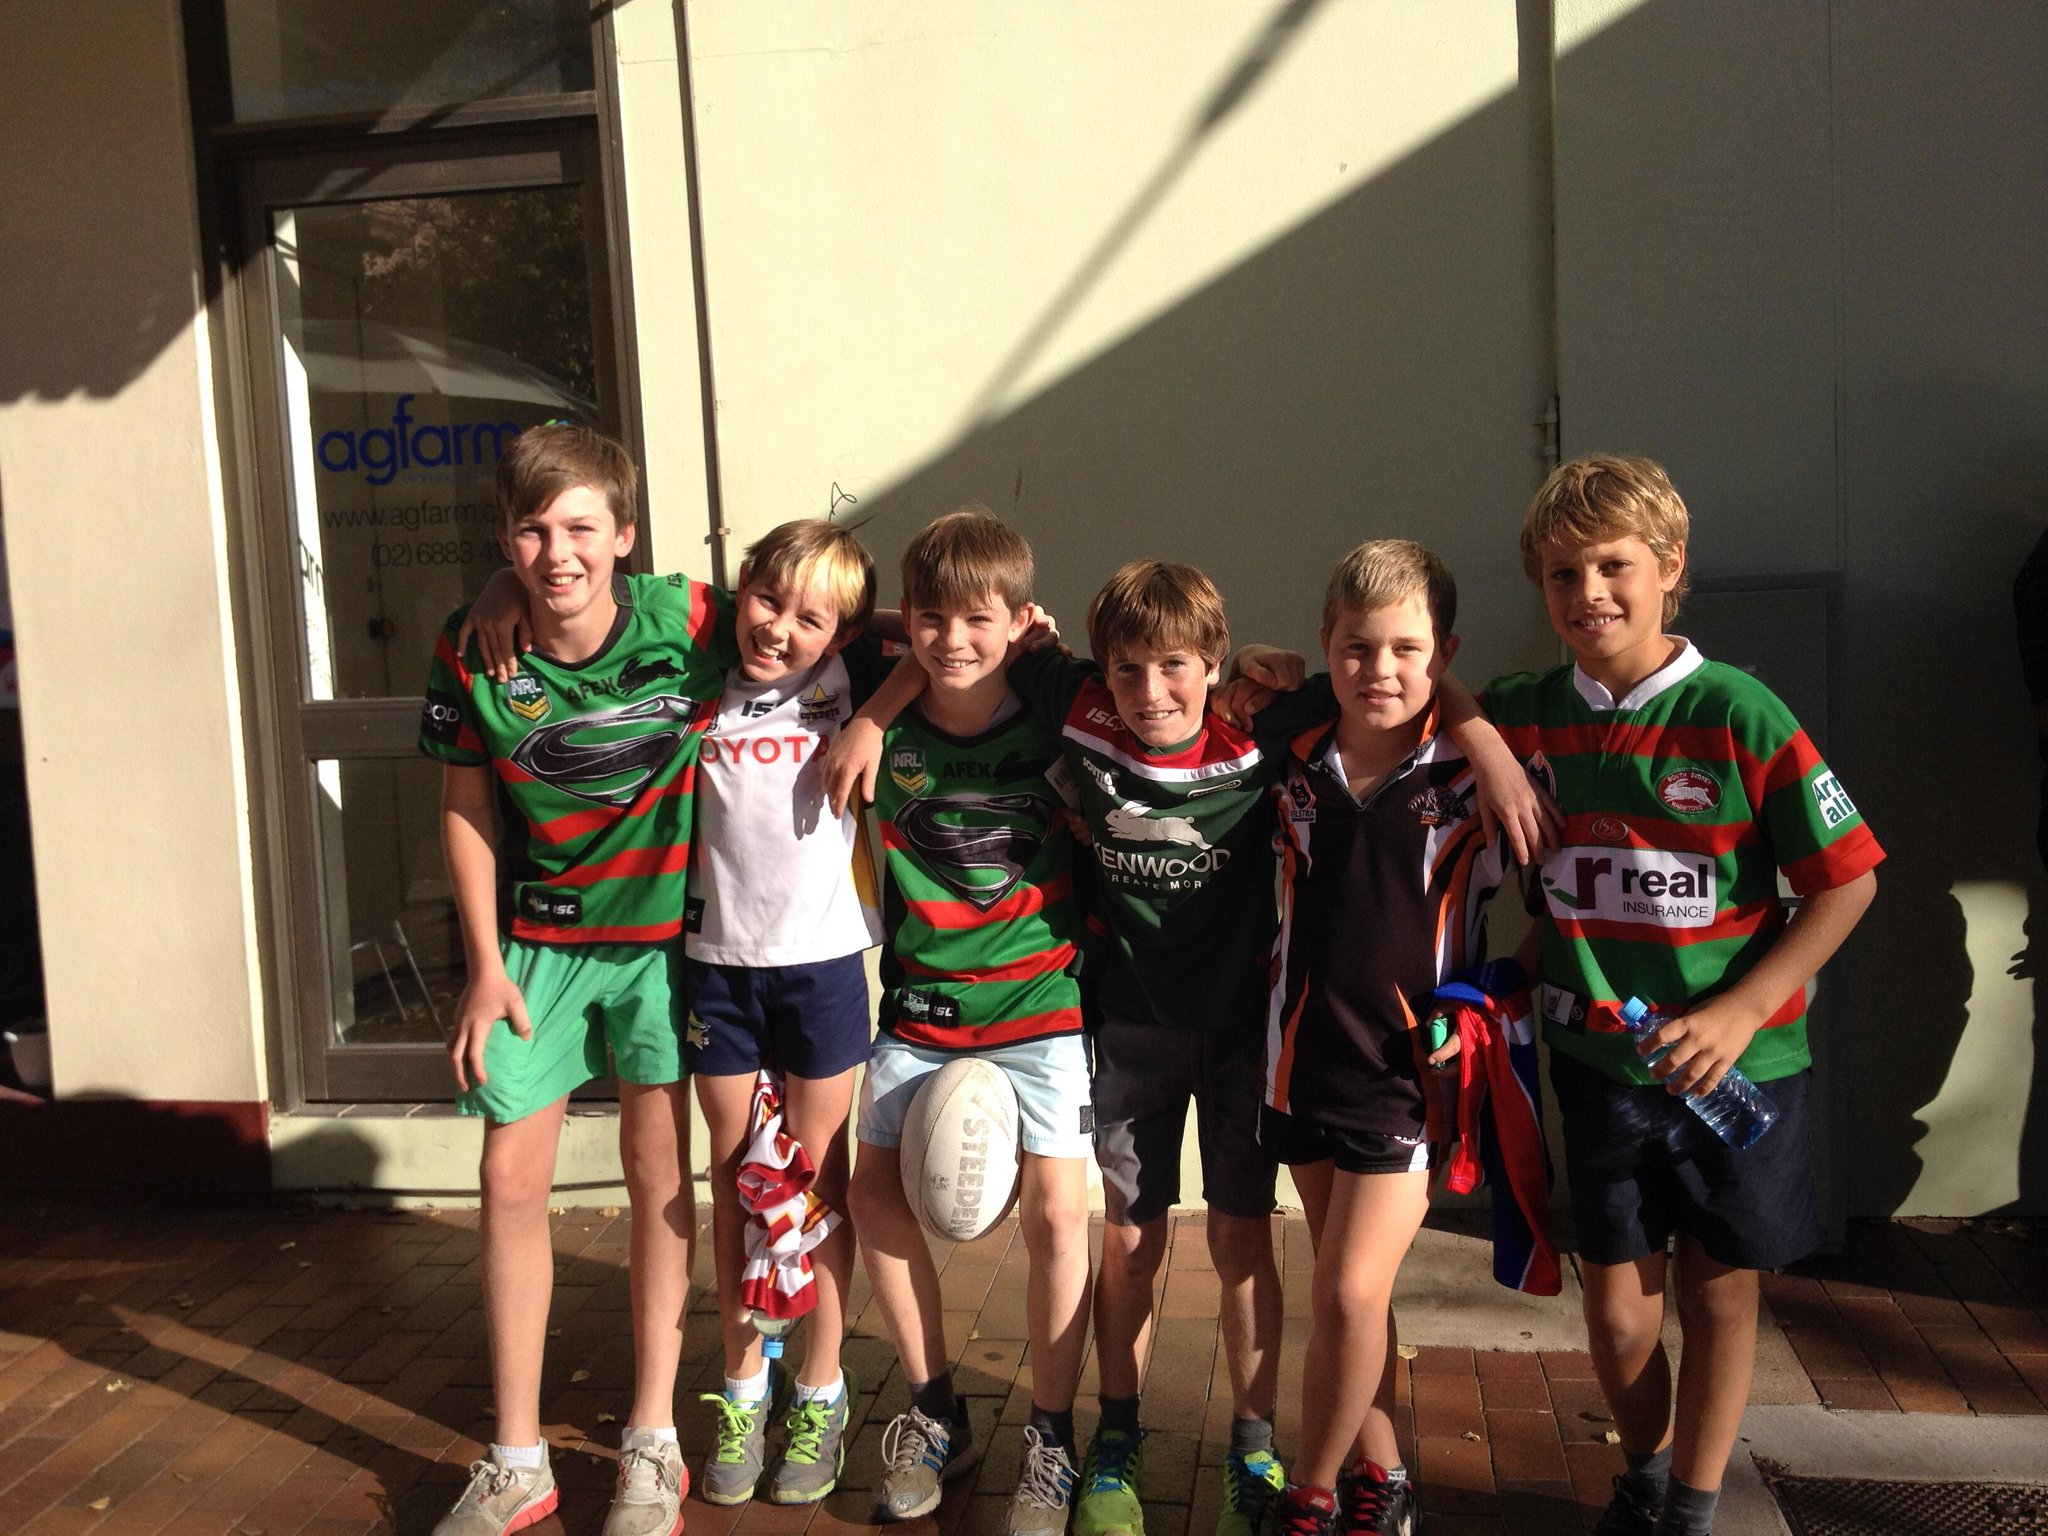 These guys travelled for 2 hours for the players signings in Dubbo! They all play for the Coonamble Bears. #CvC http://t.co/tosFcgsX6v